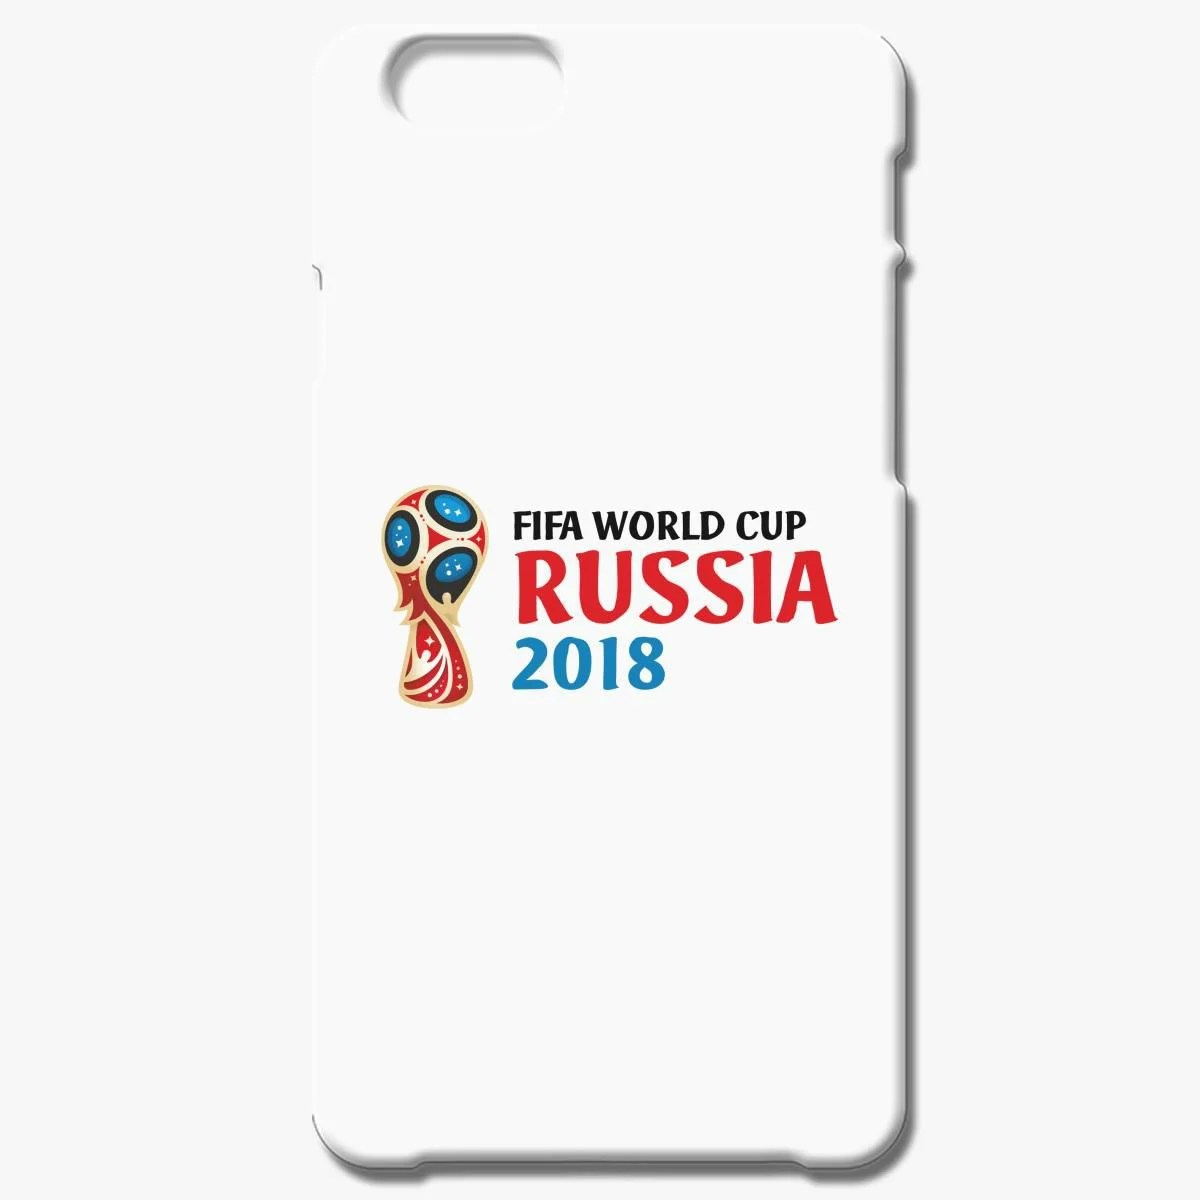 Fifa World Cup Russia Iphone 6 6s Plus Case